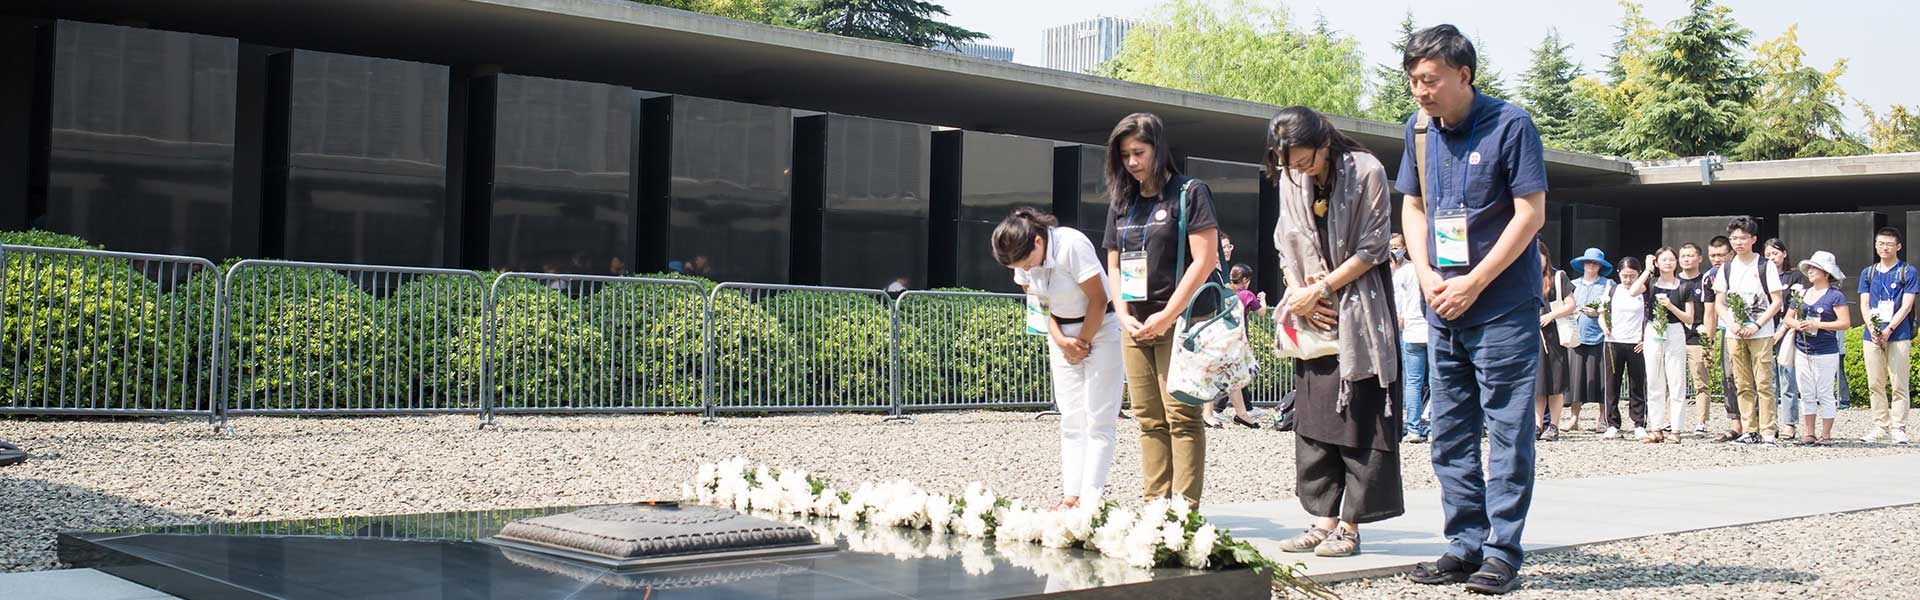 : Bowing and placing of flowers during the commemoration of the anniversary of the day that Japan surrendered to end the Asia-Pacific War in 1945.